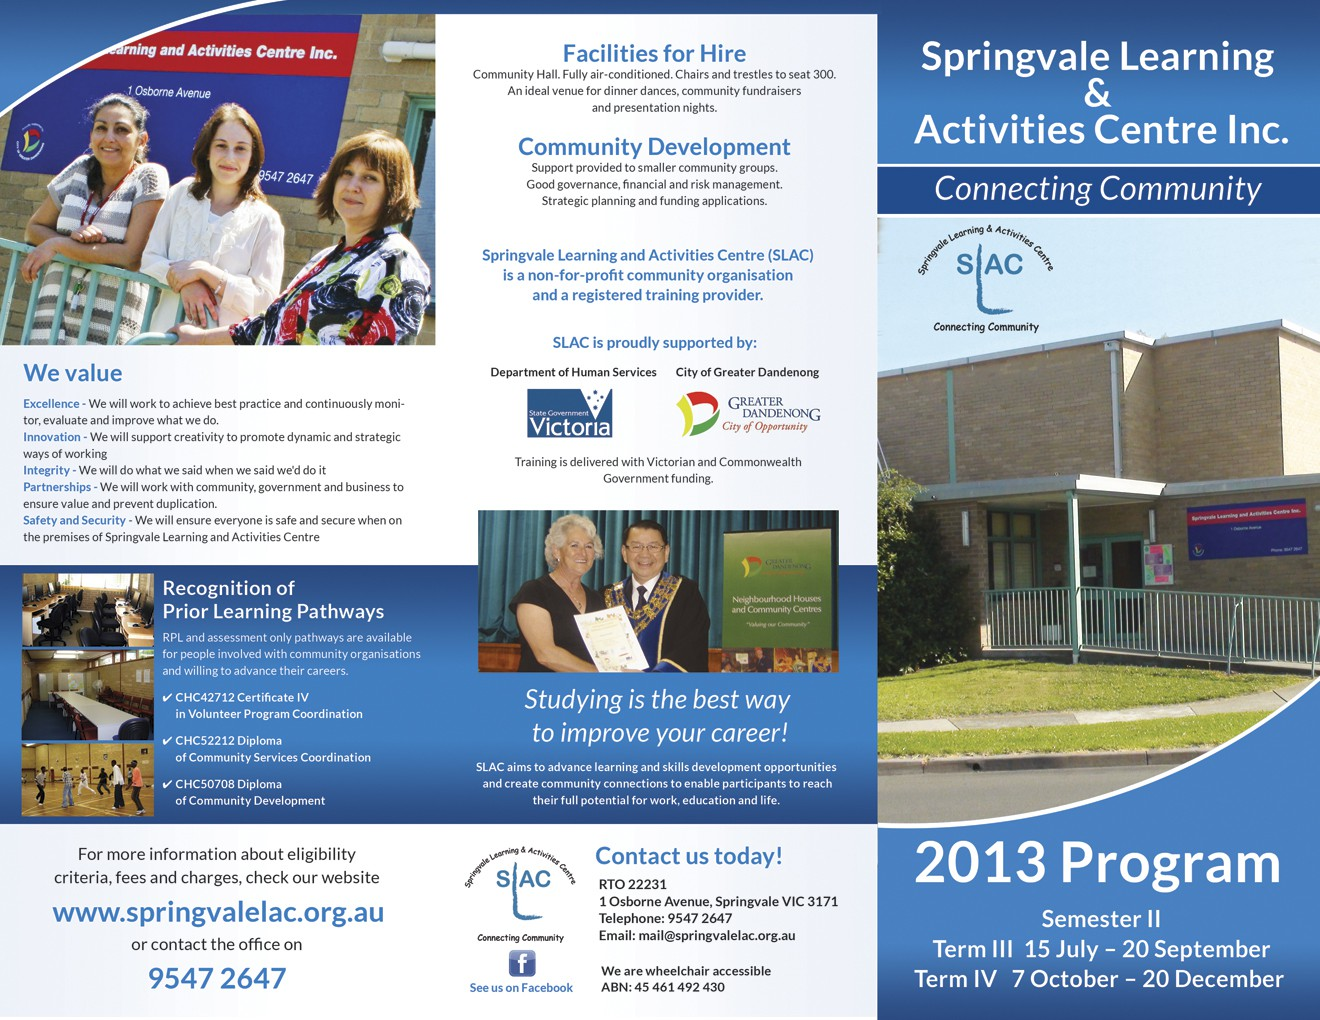 Create the next brochure design for Springvale Learning and Activities Centre